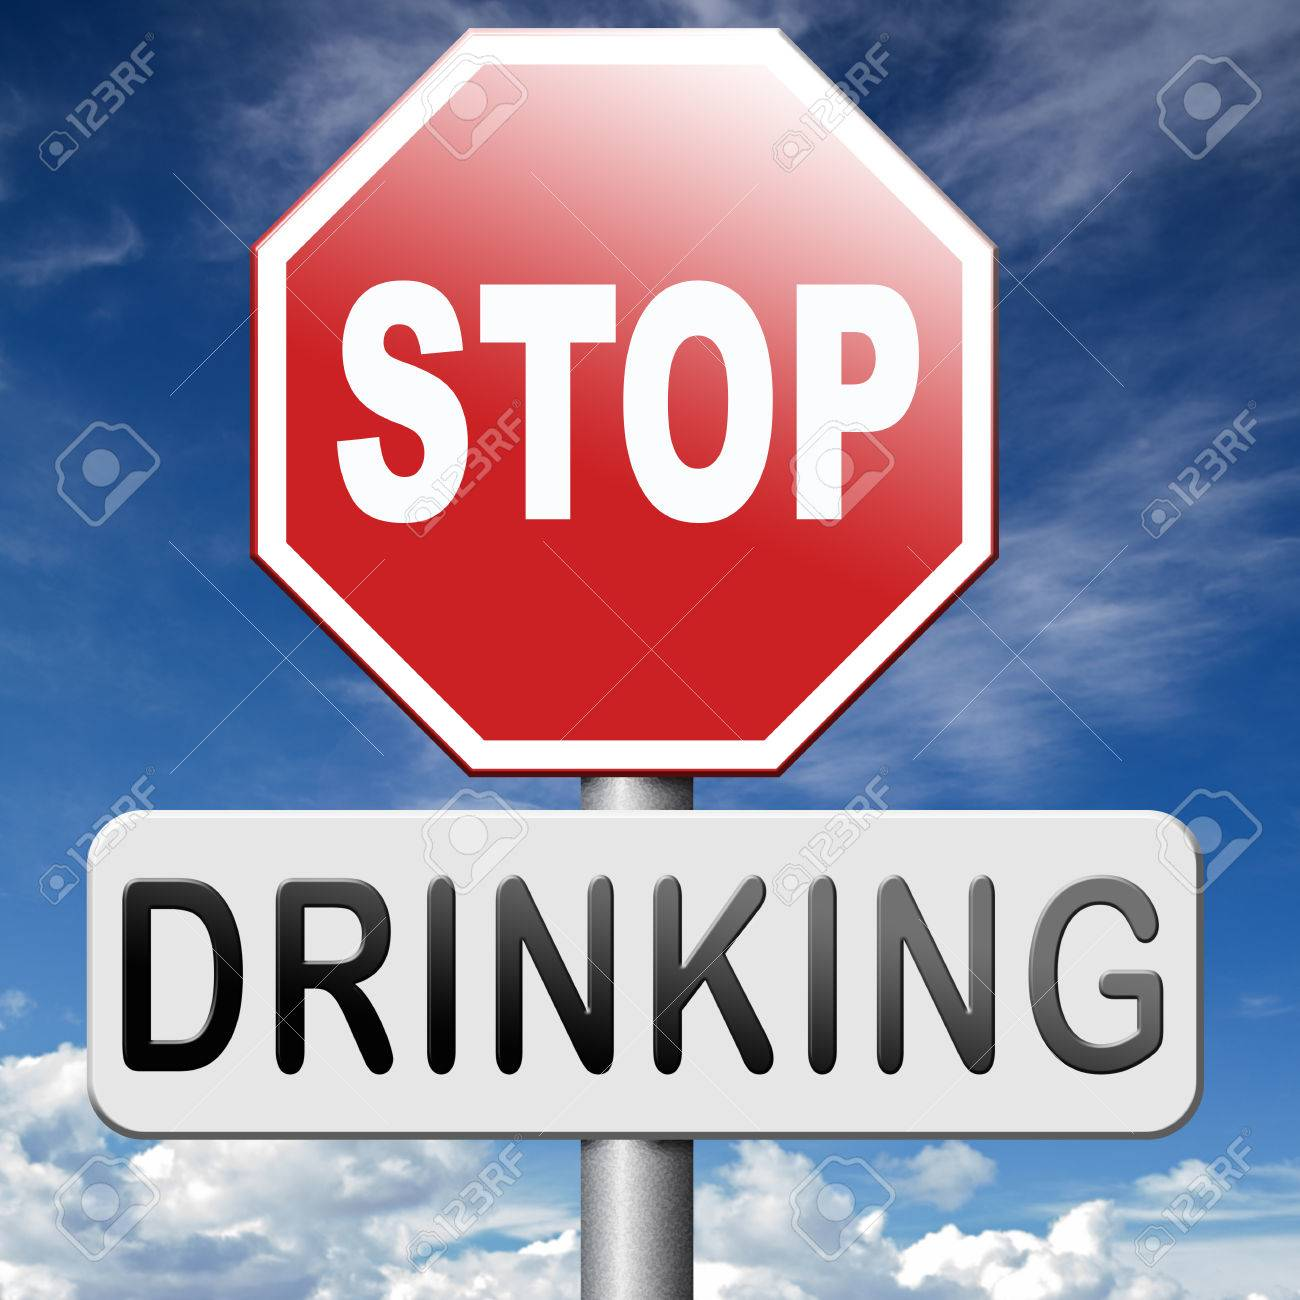 stop drinking alcohol go to rehab for alcoholism and drunk drivingstock photo stop drinking alcohol go to rehab for alcoholism and drunk driving